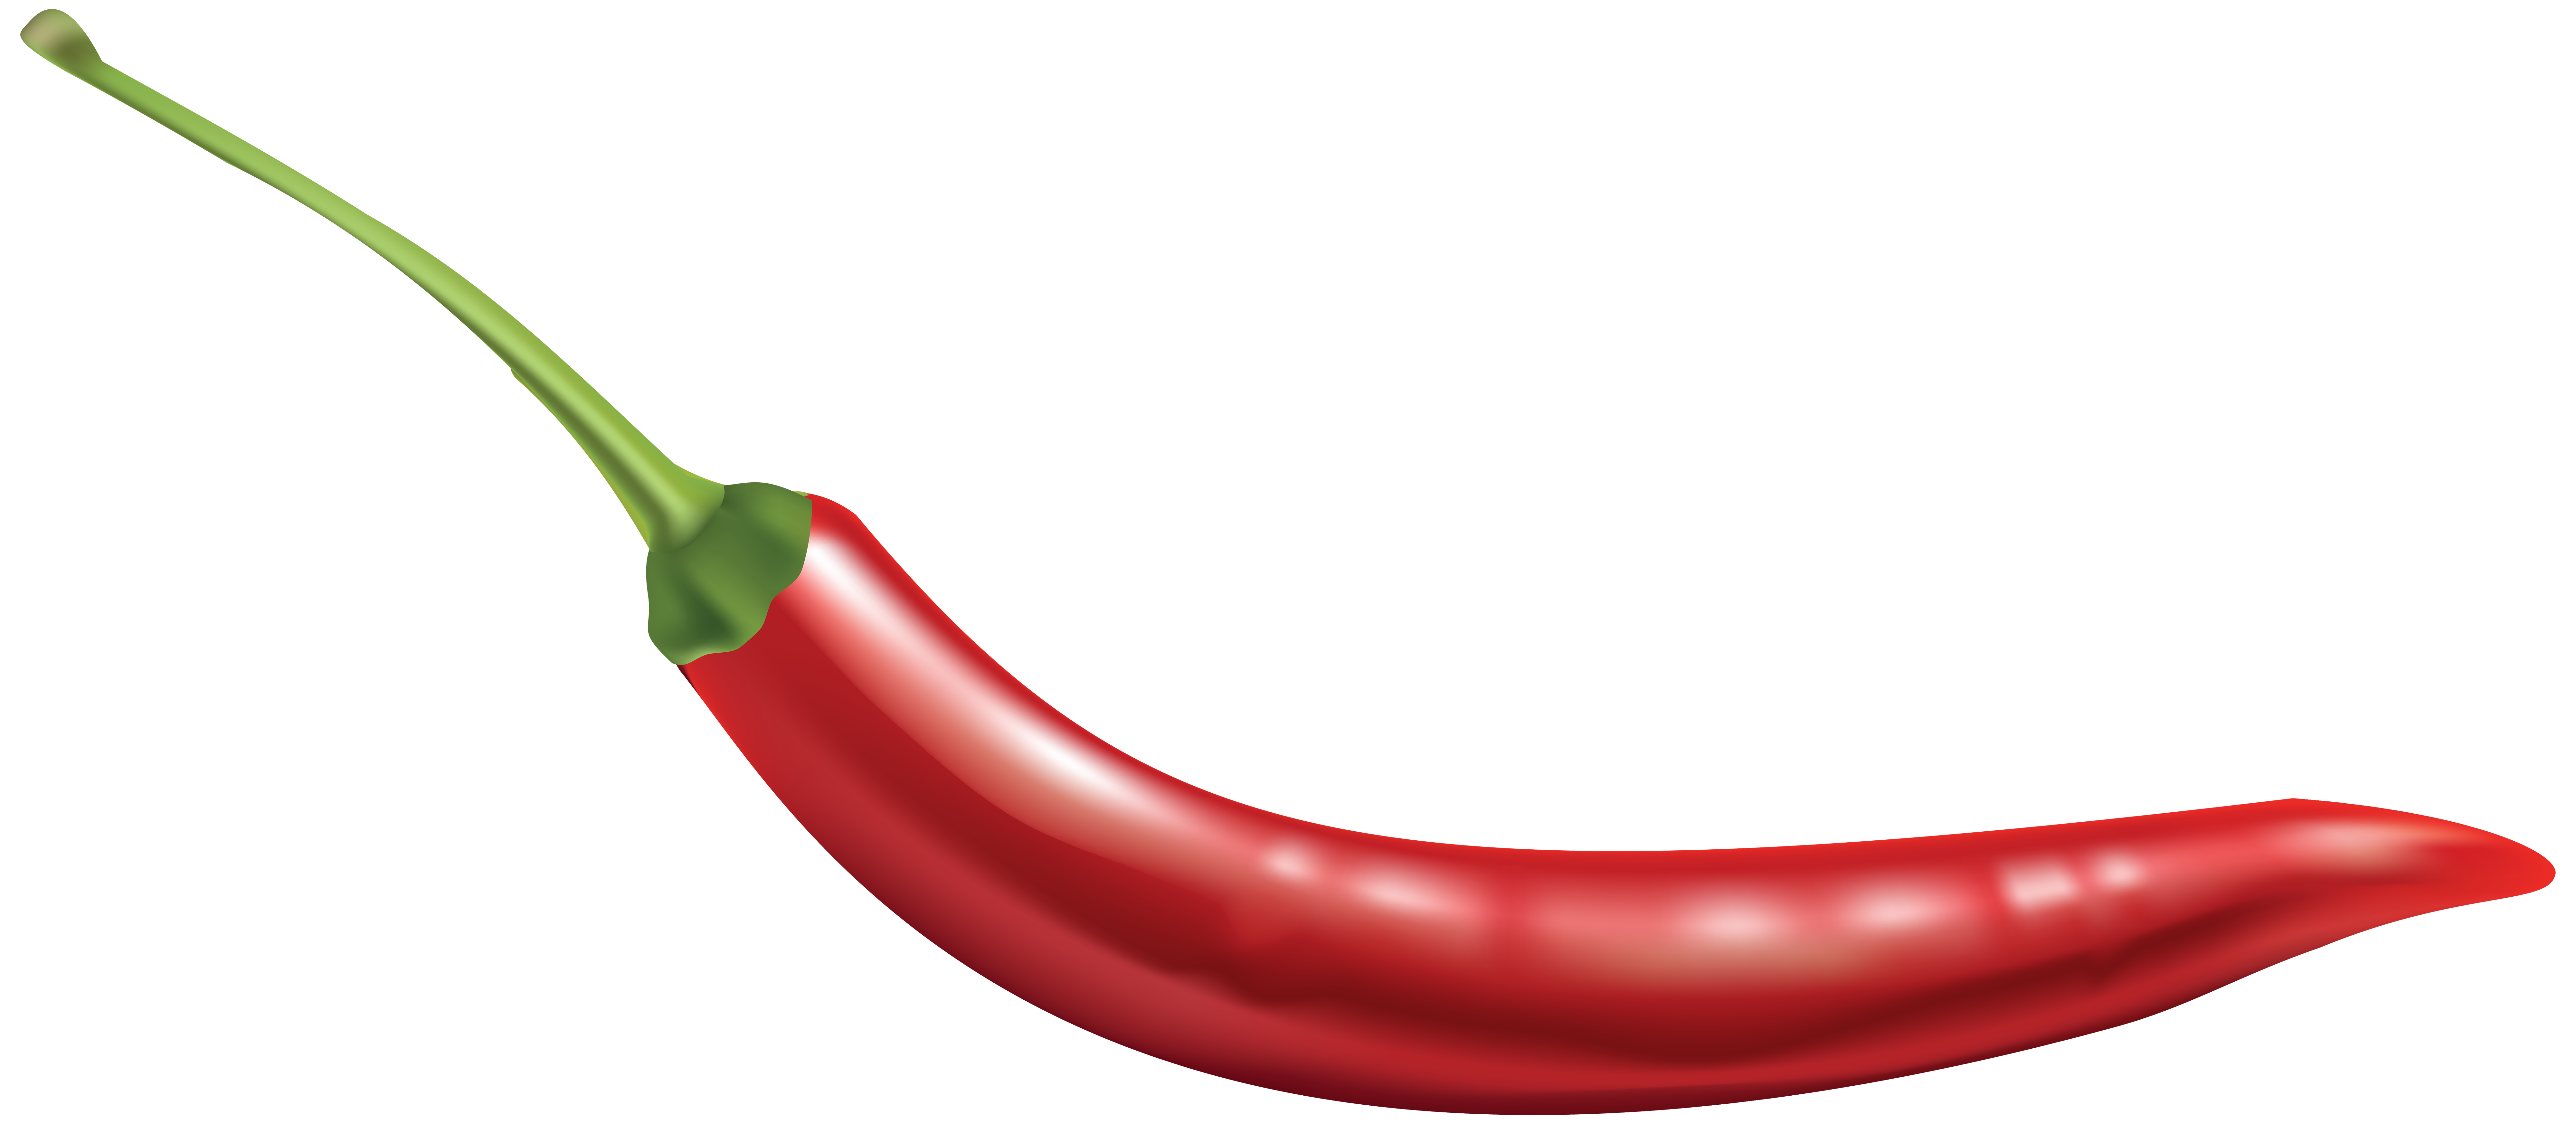 Red Chili Pepper Free PNG Clip Art Image.